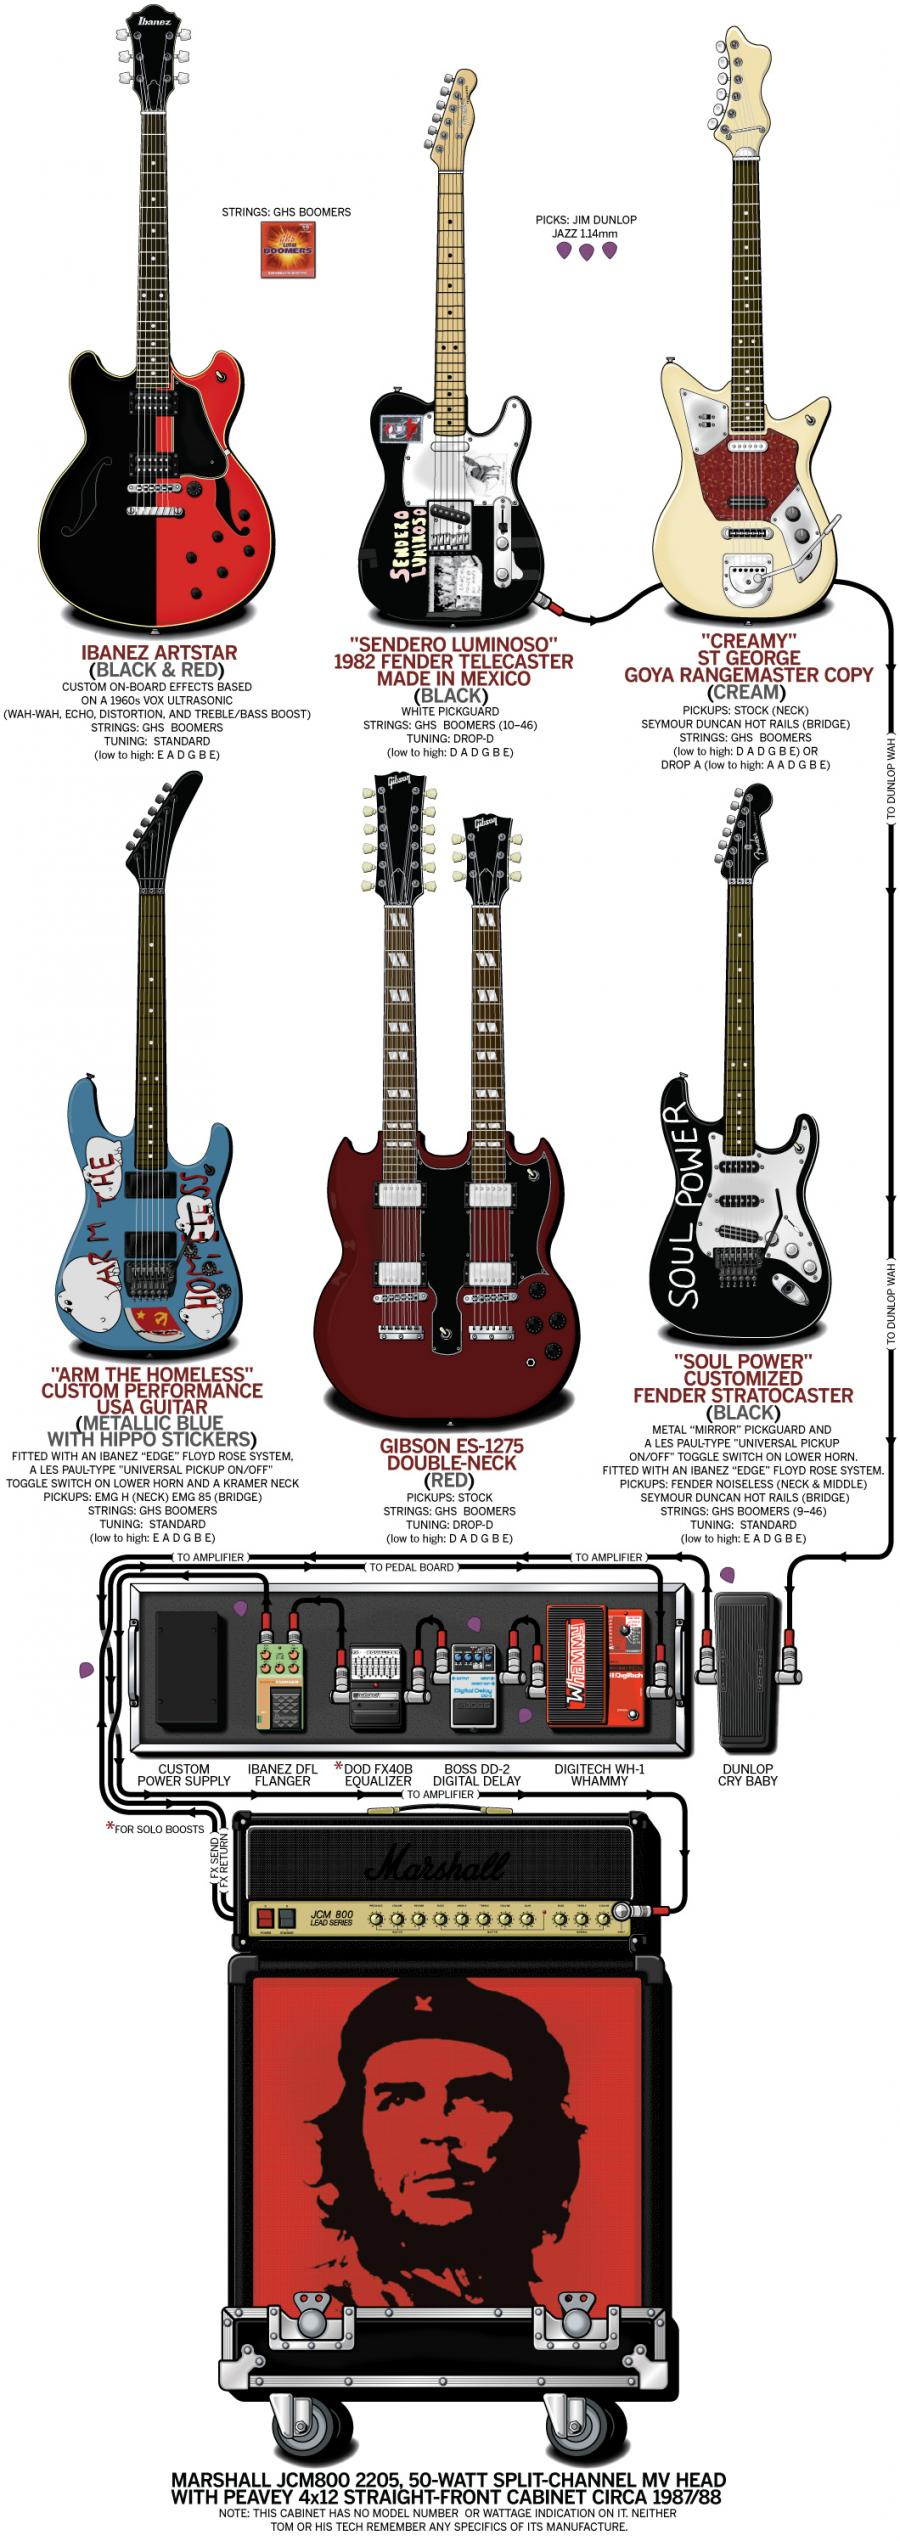 guitar rig diagram es 335 wiring gibson awesome for original geek diagrams chalk tom morello rage against the machine 1998